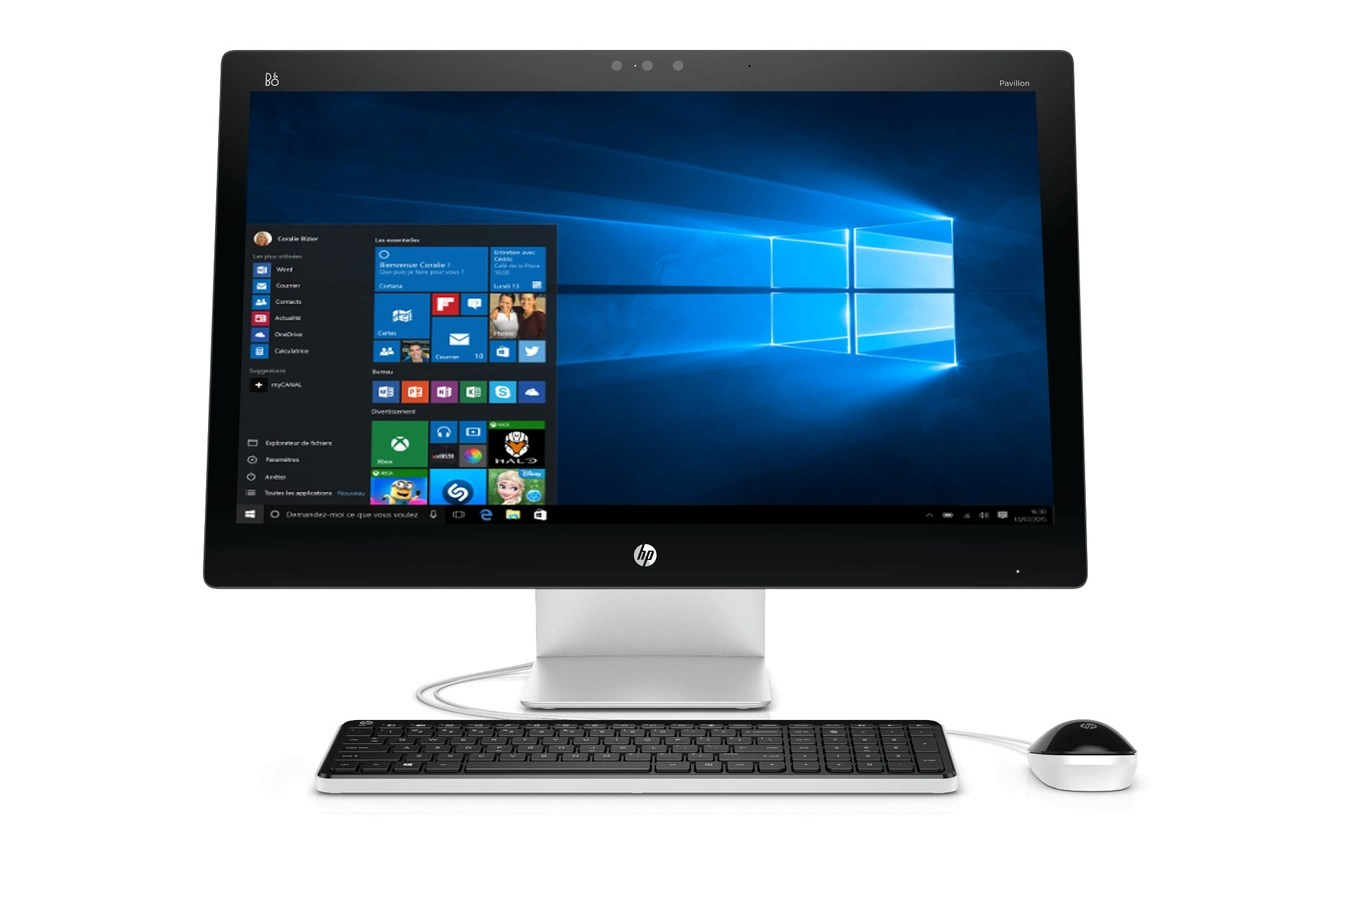 Darty Ordinateur Bureau Pc De Bureau Hp Pavilion 27 N205nf 4217454 Darty